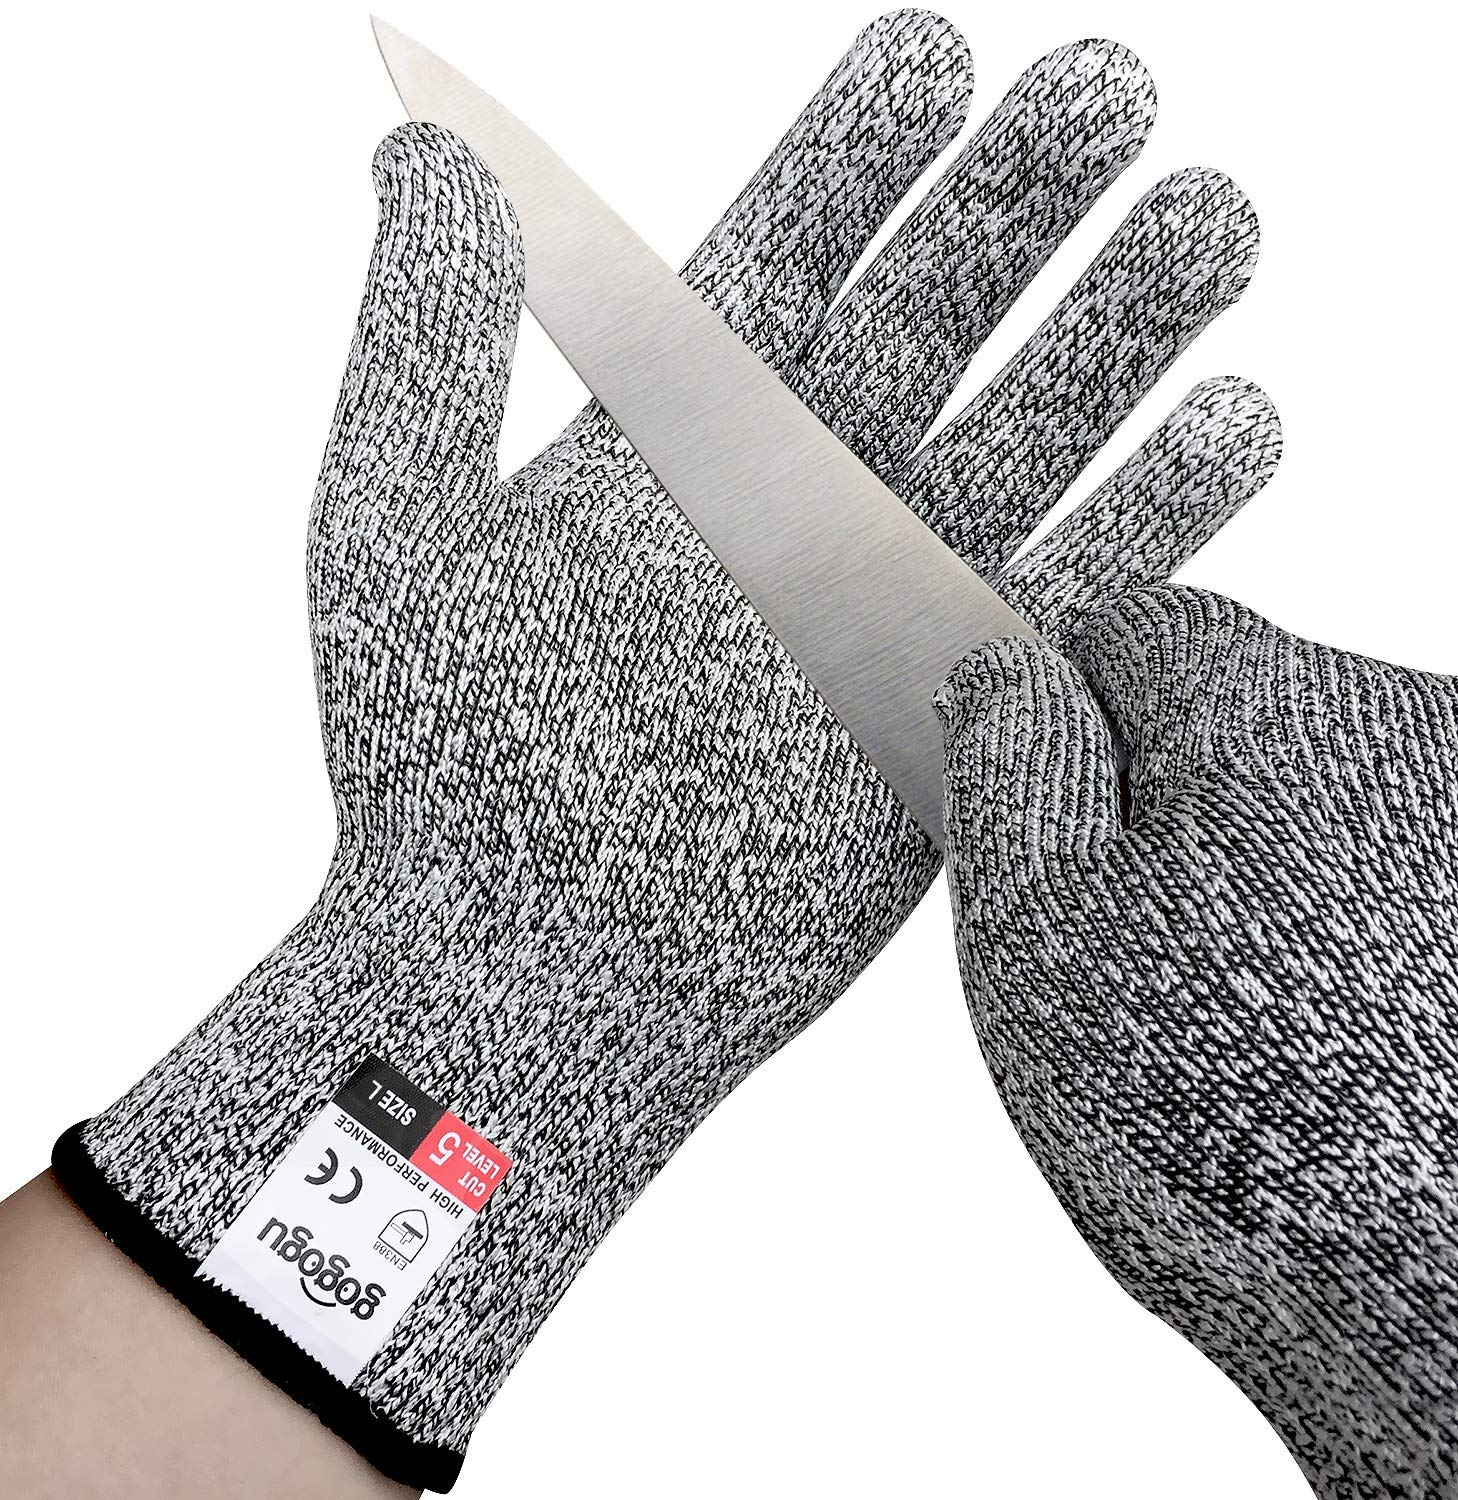 or XL L Stark Safe Level 5 Protection Cut Resistant Kitchen Chef Gloves S M